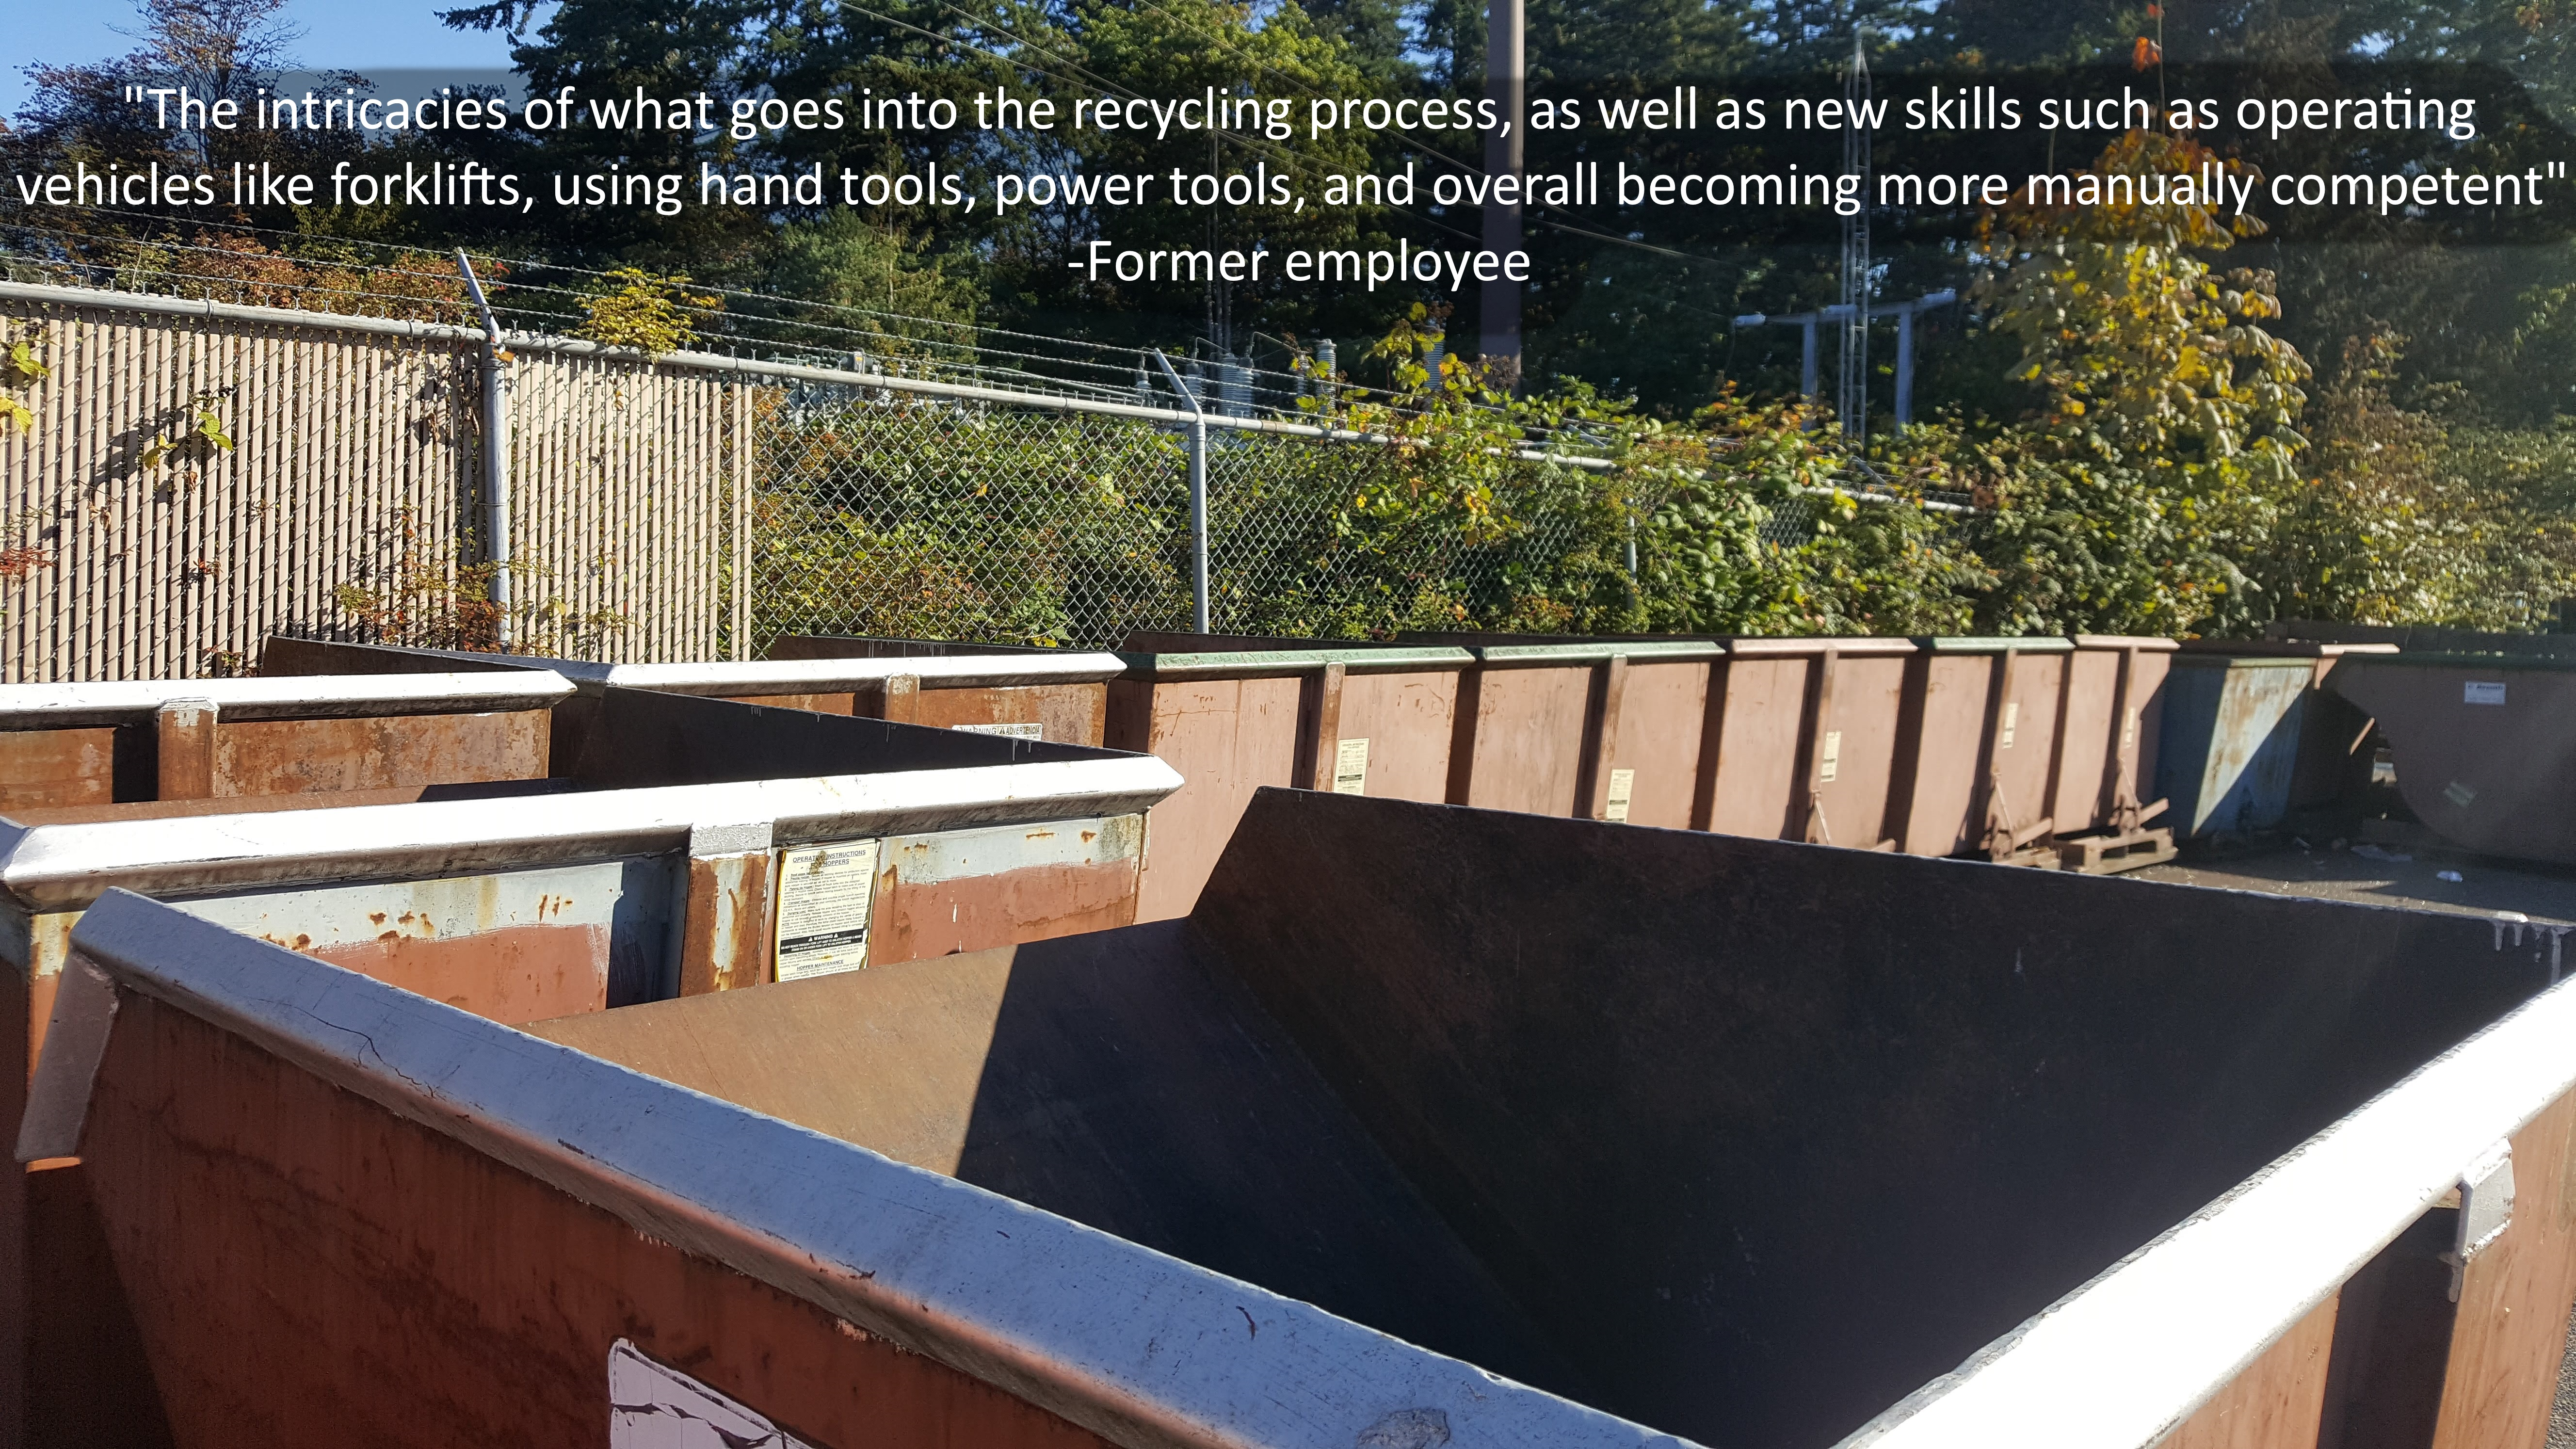 """""""The intricacies of what goes into the recycling process, as well as new skills such as operating vehicles like forklifts, using hand tools, power tools, and overall becoming more manually competent"""" -Former employee"""